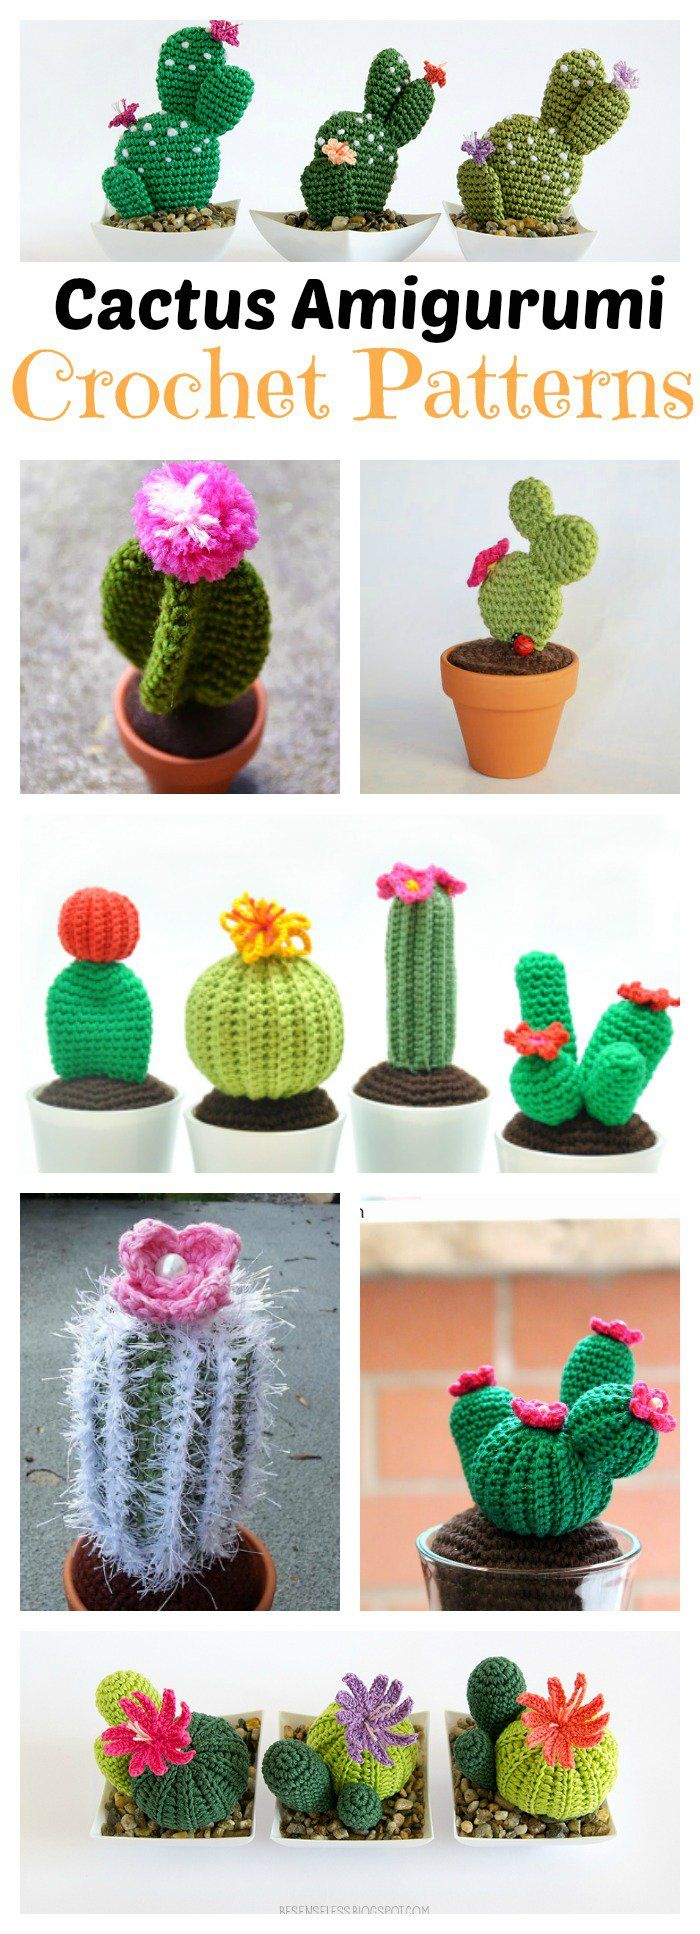 10+ Desert Cactus Amigurumi Crochet Patterns – Look Surprisingly Real